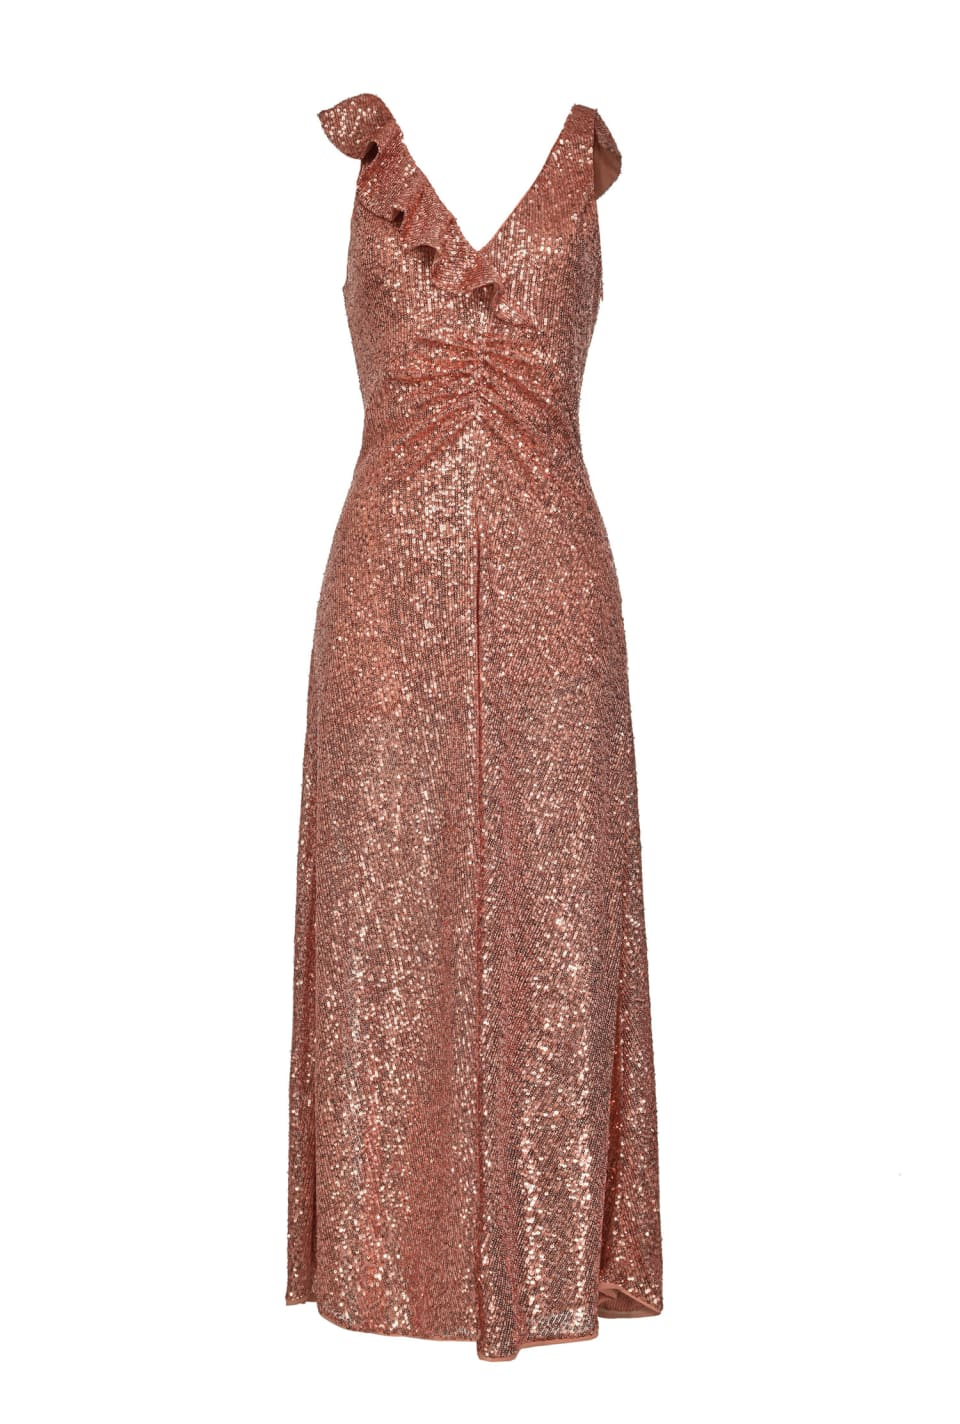 All-over sequin dress with ruffles